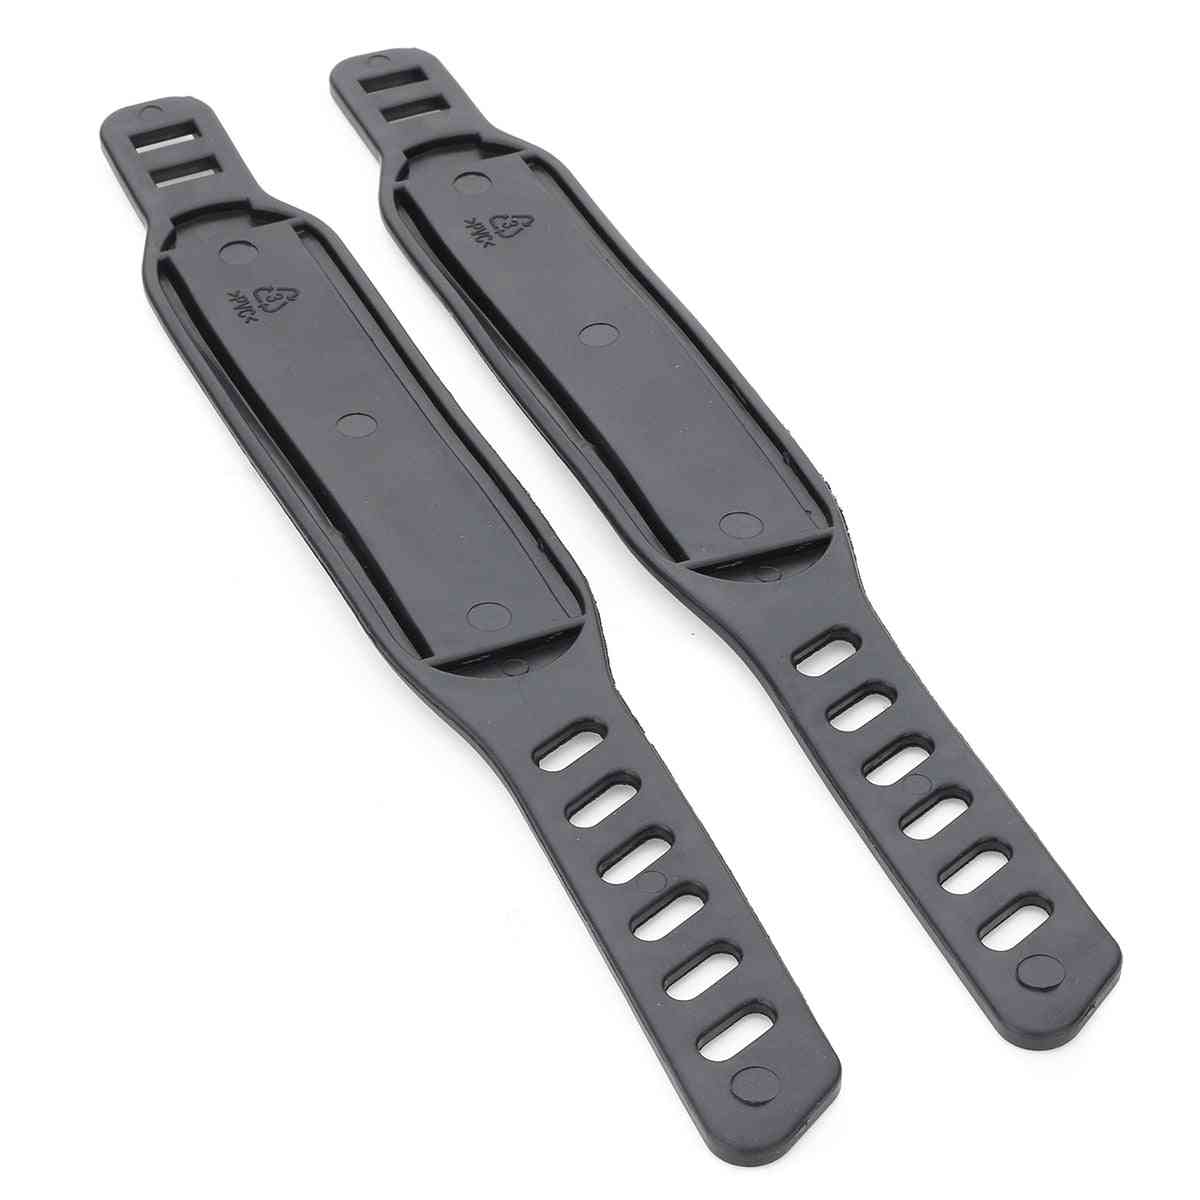 Pair Bicycle, Cycling Stationary Fitness Exercise Bike Pedal Straps, Belts Fix Bands, Tape Generic